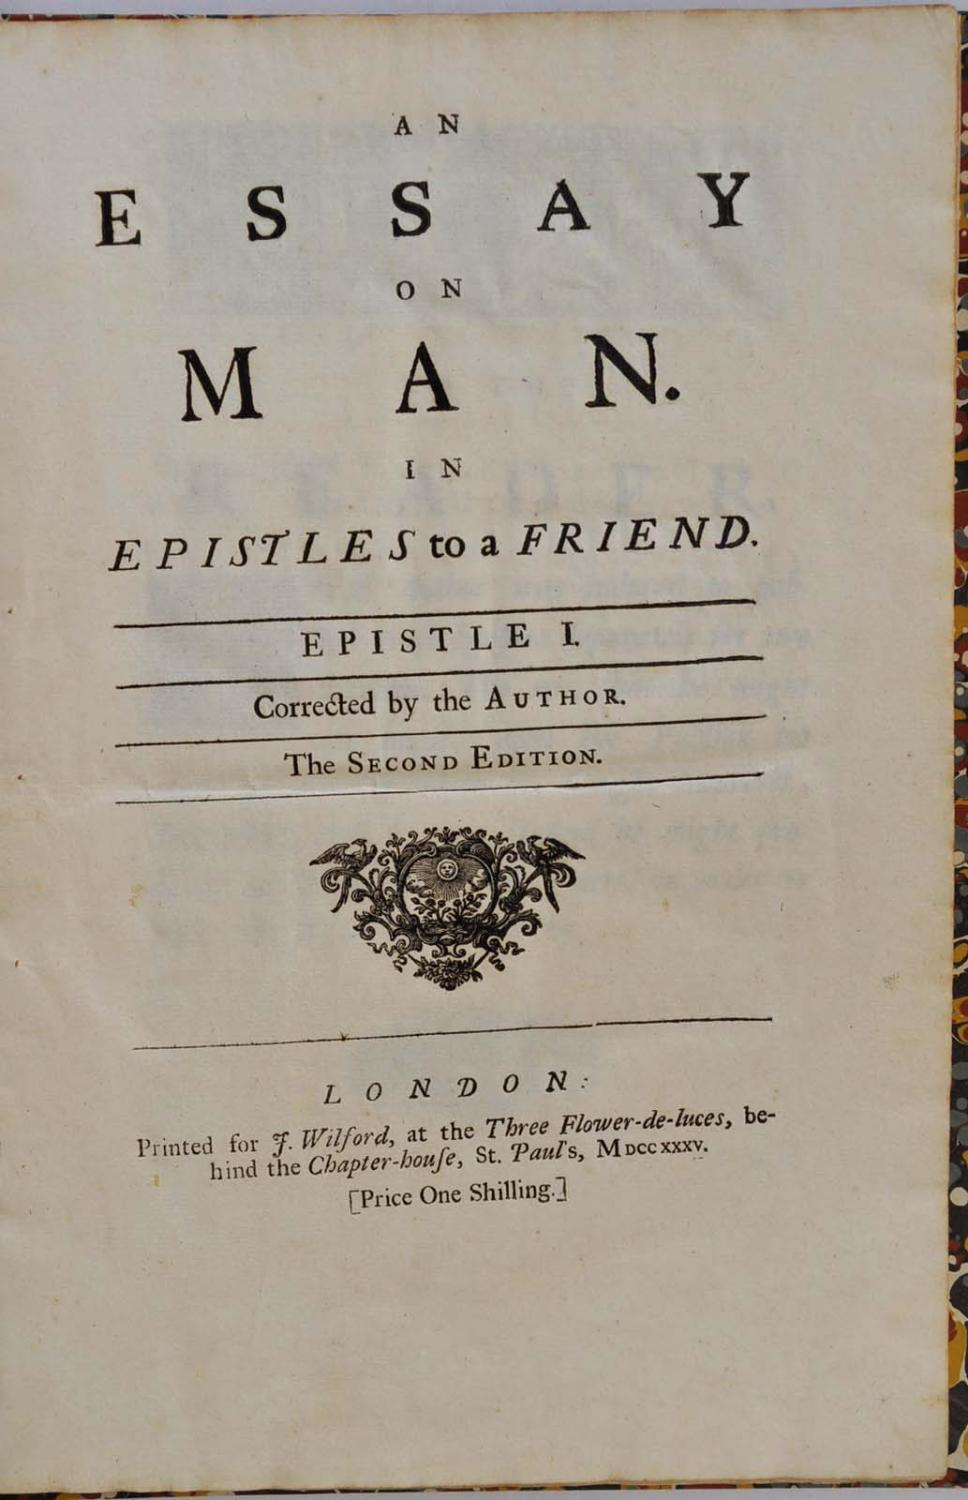 alexander pope an essay on man epistle ii 280 an essay on man epistle ii-of the nature and state of man with respect to himself, as an individual alexander pope 1909-14 english poetry i: from chaucer to.